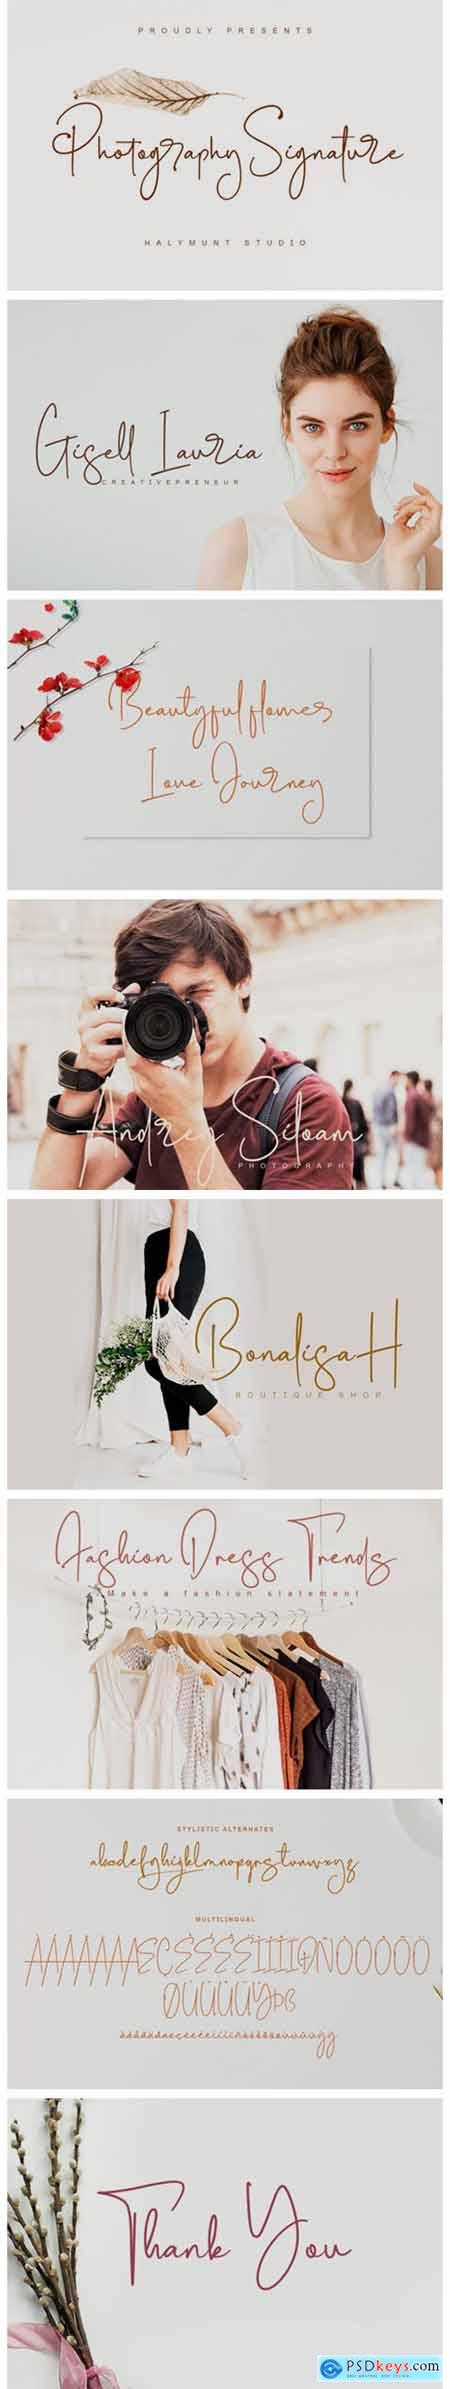 Photography Signature Font